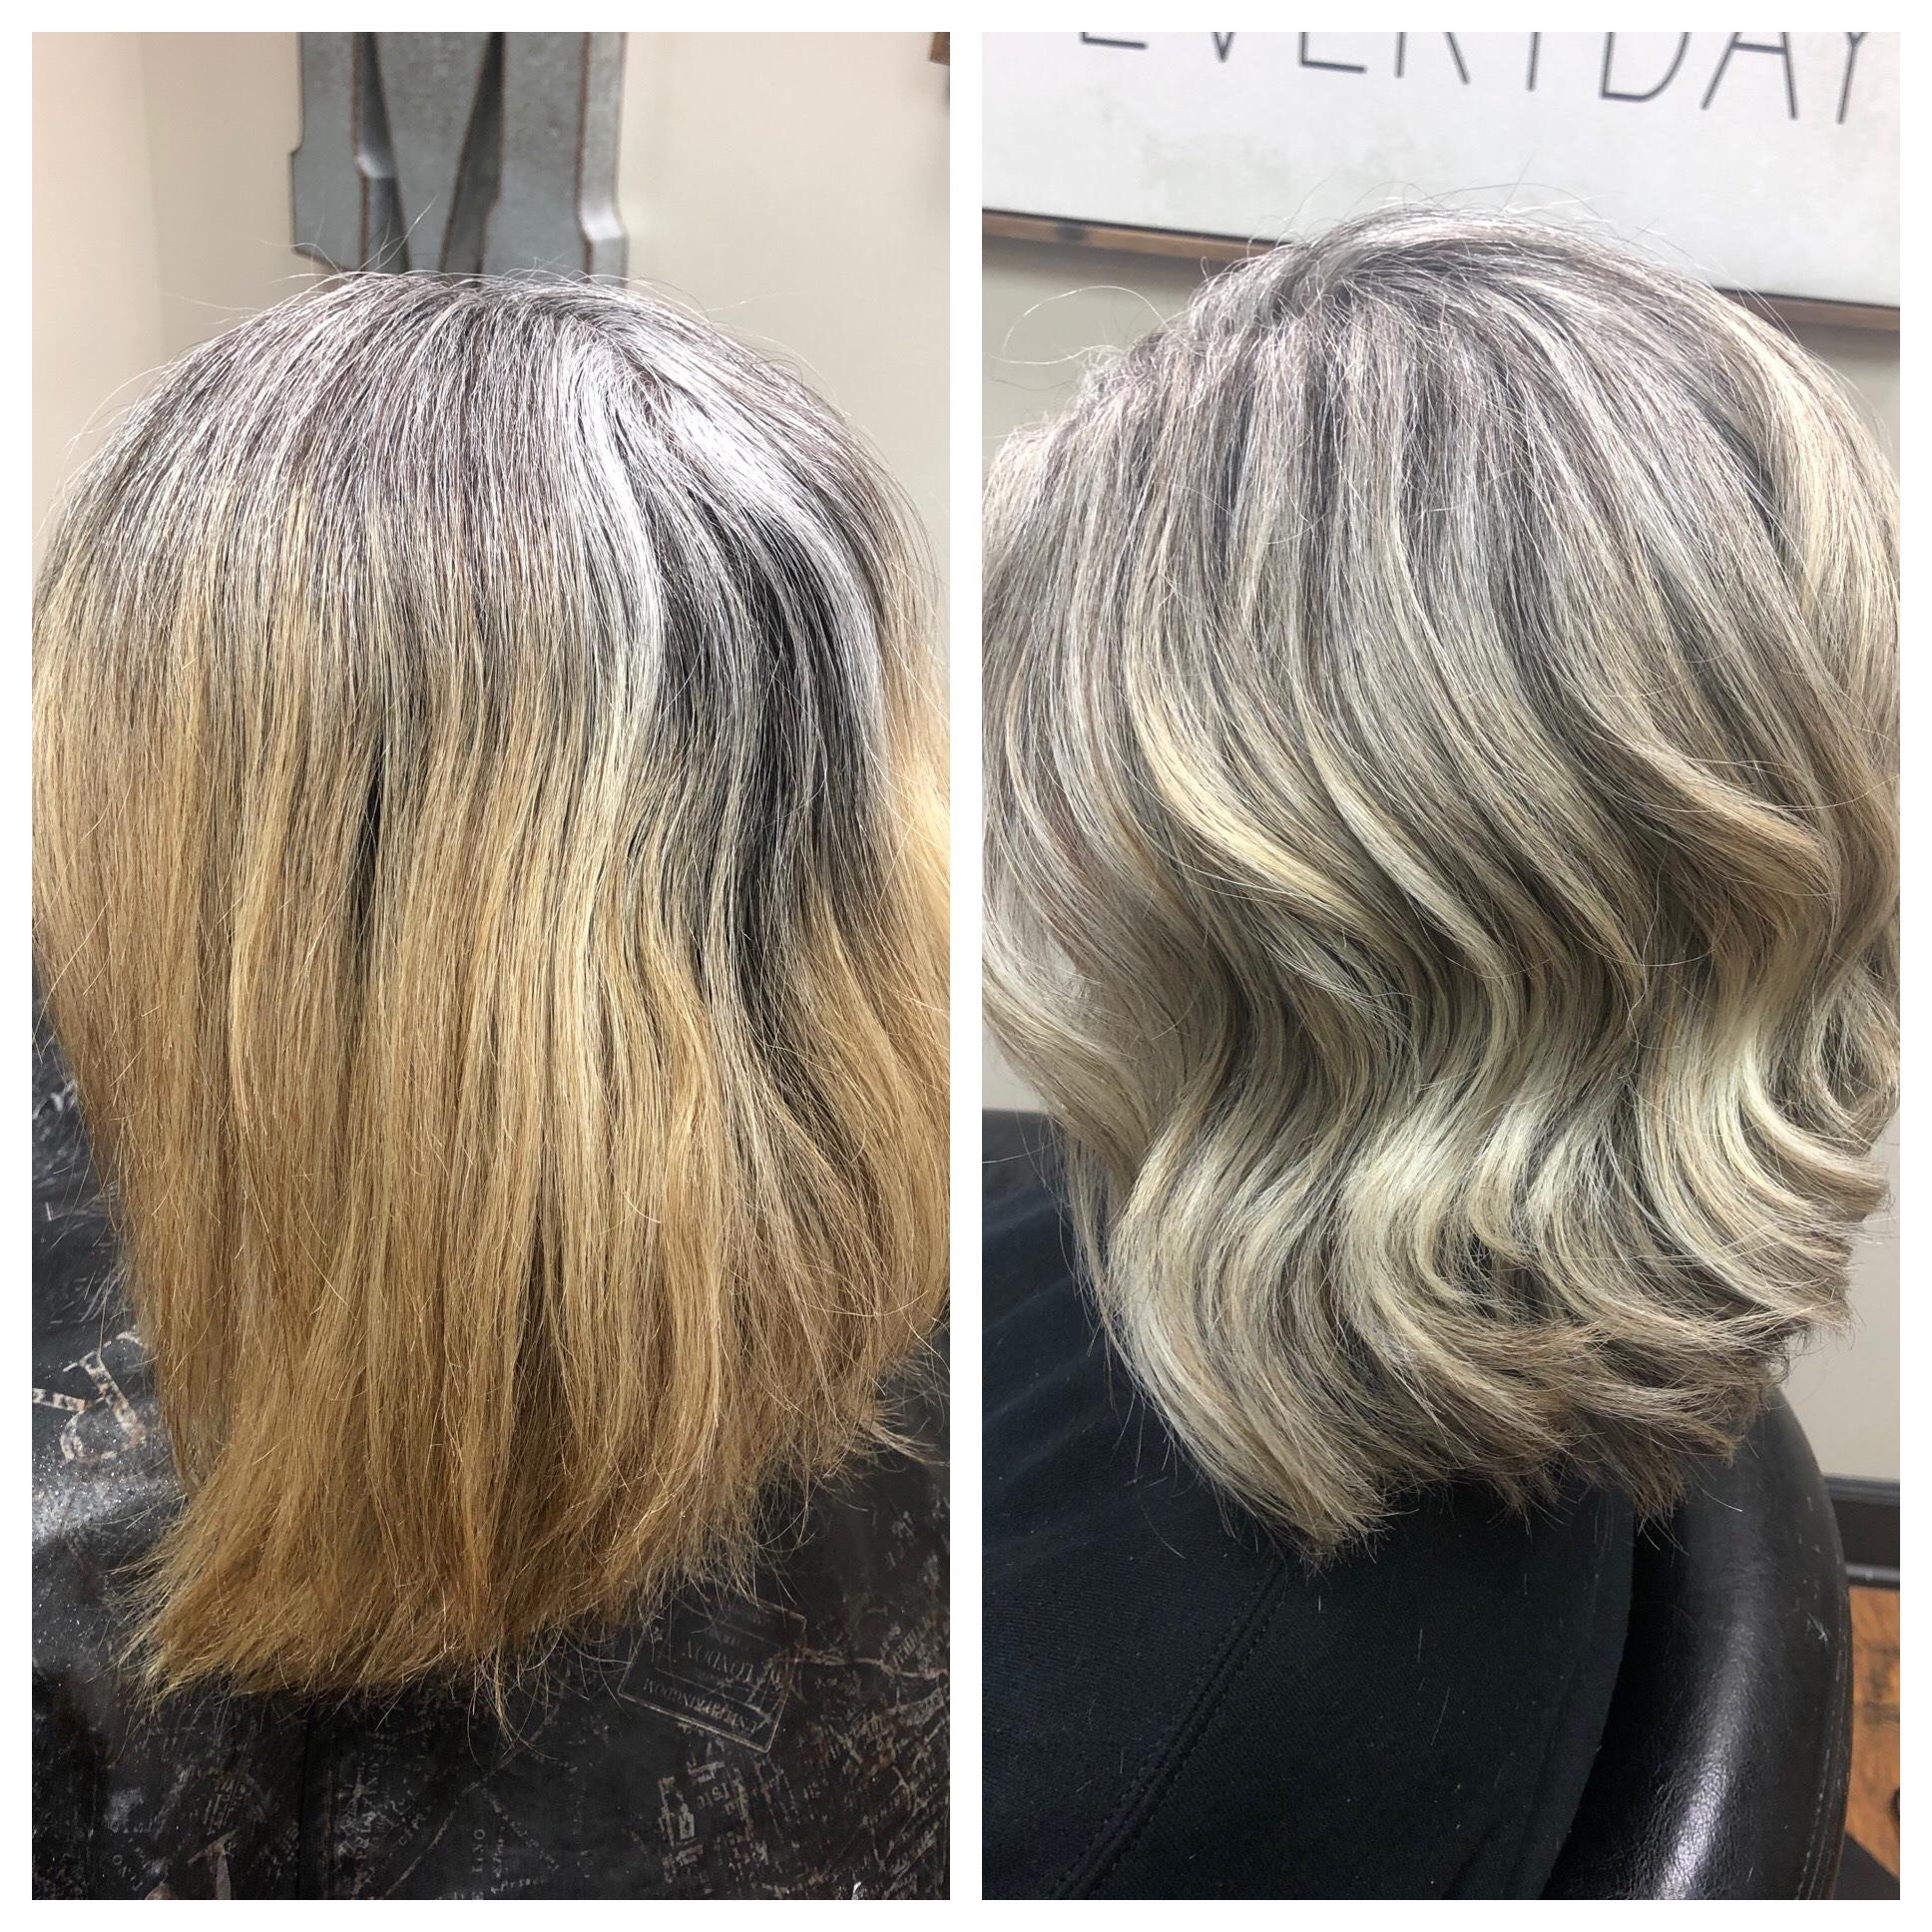 Maci Munoz-Salon Revive In Lebanon TN  Vagaro